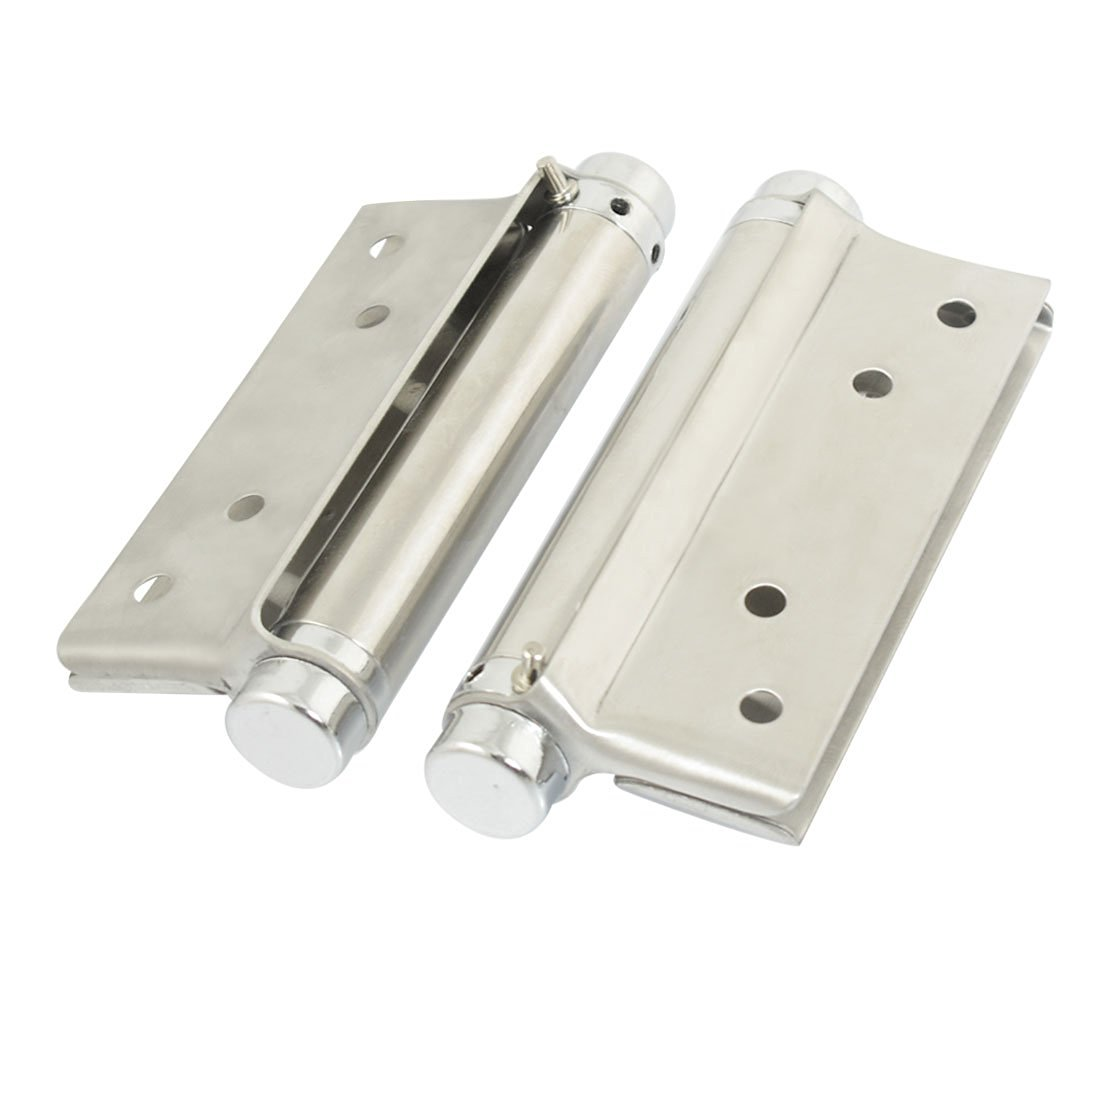 Cheap Spring Loaded Cabinet Hinge Find Spring Loaded Cabinet Hinge